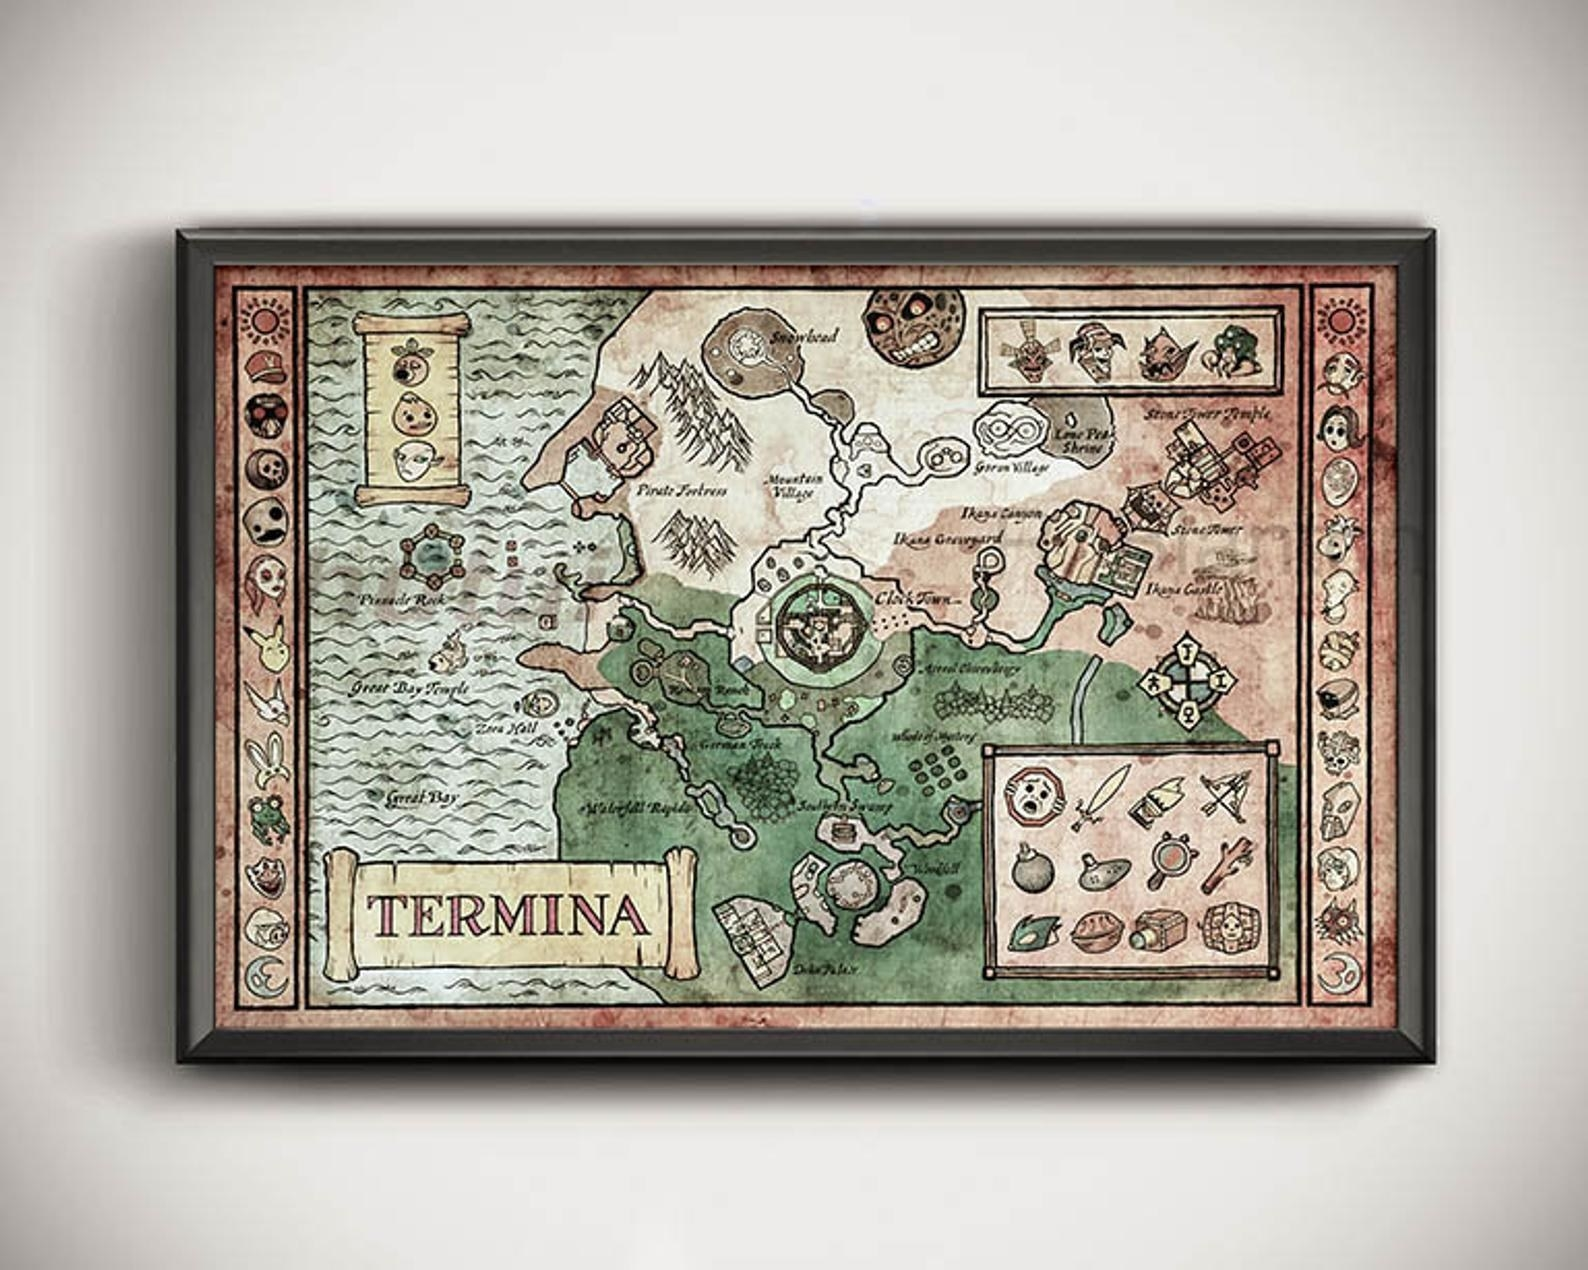 the map in a frame